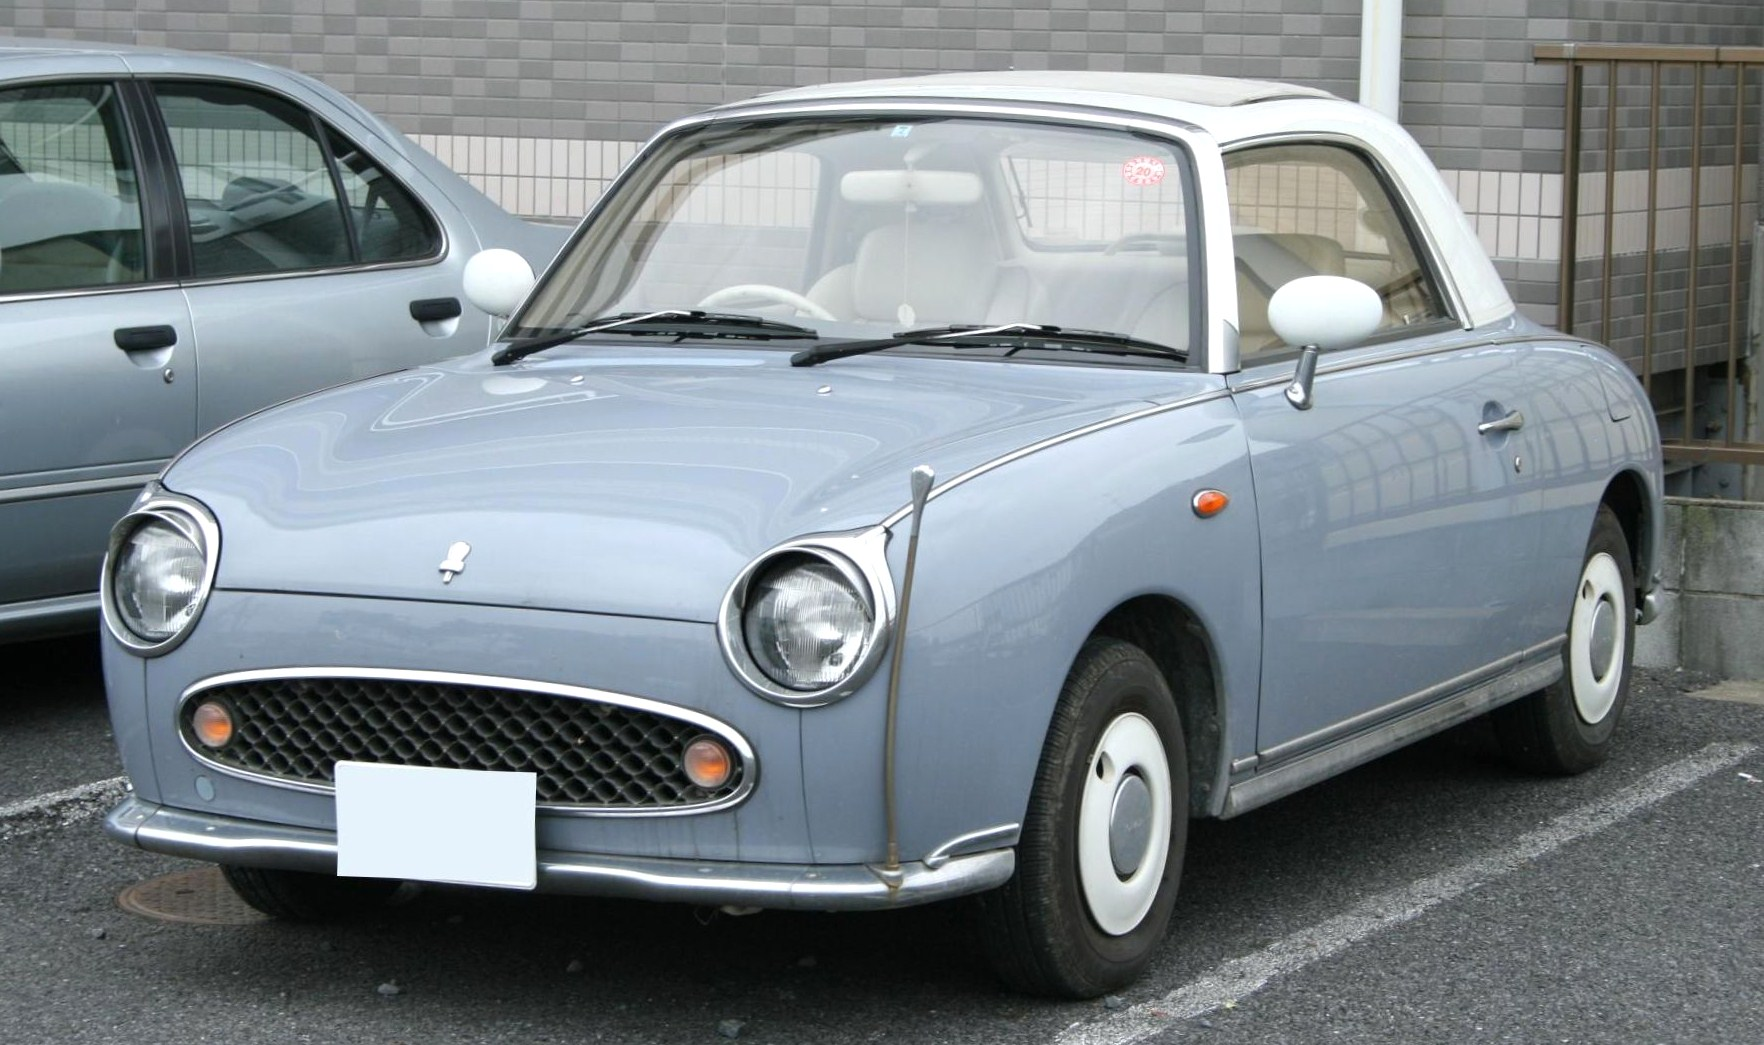 Because i have 91 points, here's a 1991 nissan figaro.